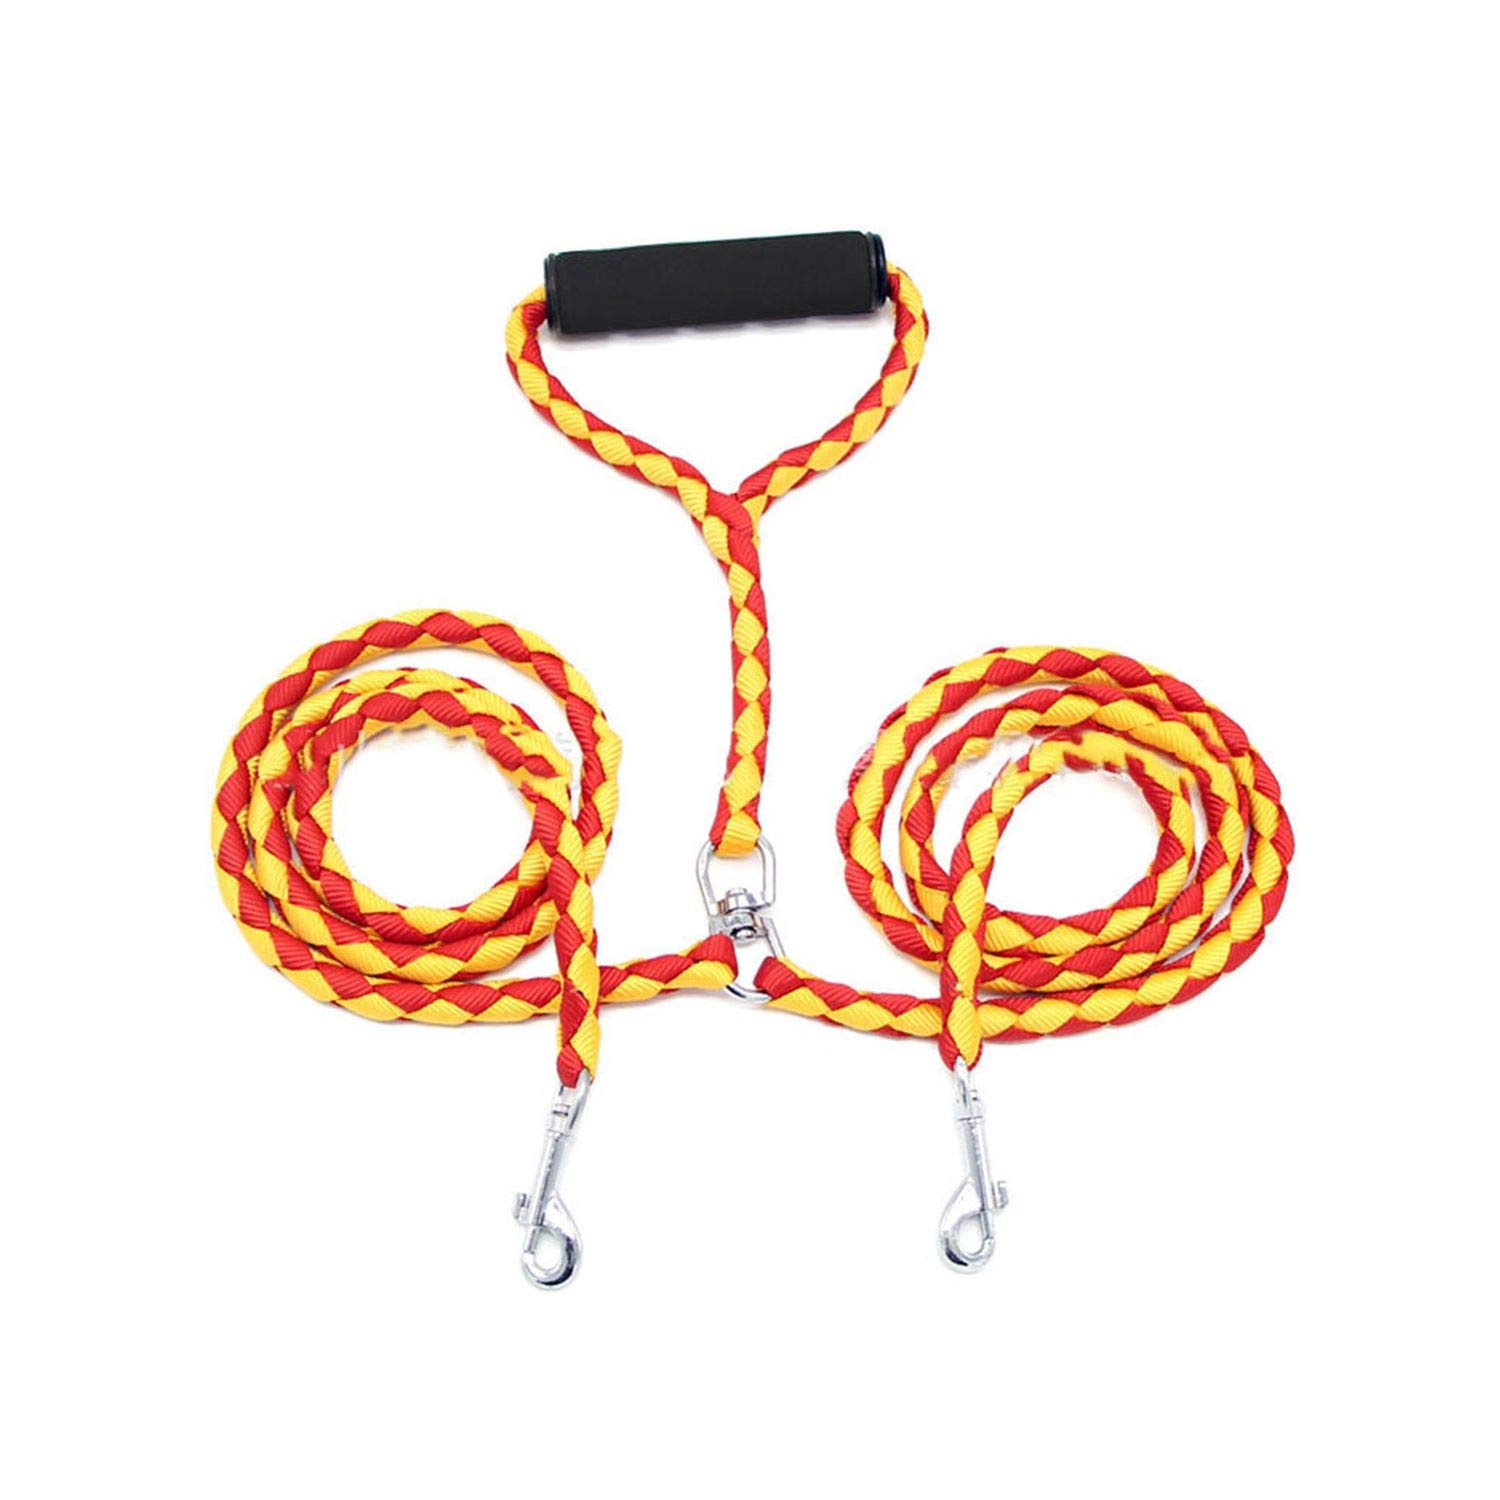 ZZmeet Pet Nylon Dual Dog Leash No-Tangle Double Dog Leash Coupler for 2 Dogs Contrast Color Padded Handle for Small Medium Large Dogs,RedBlack,140cm